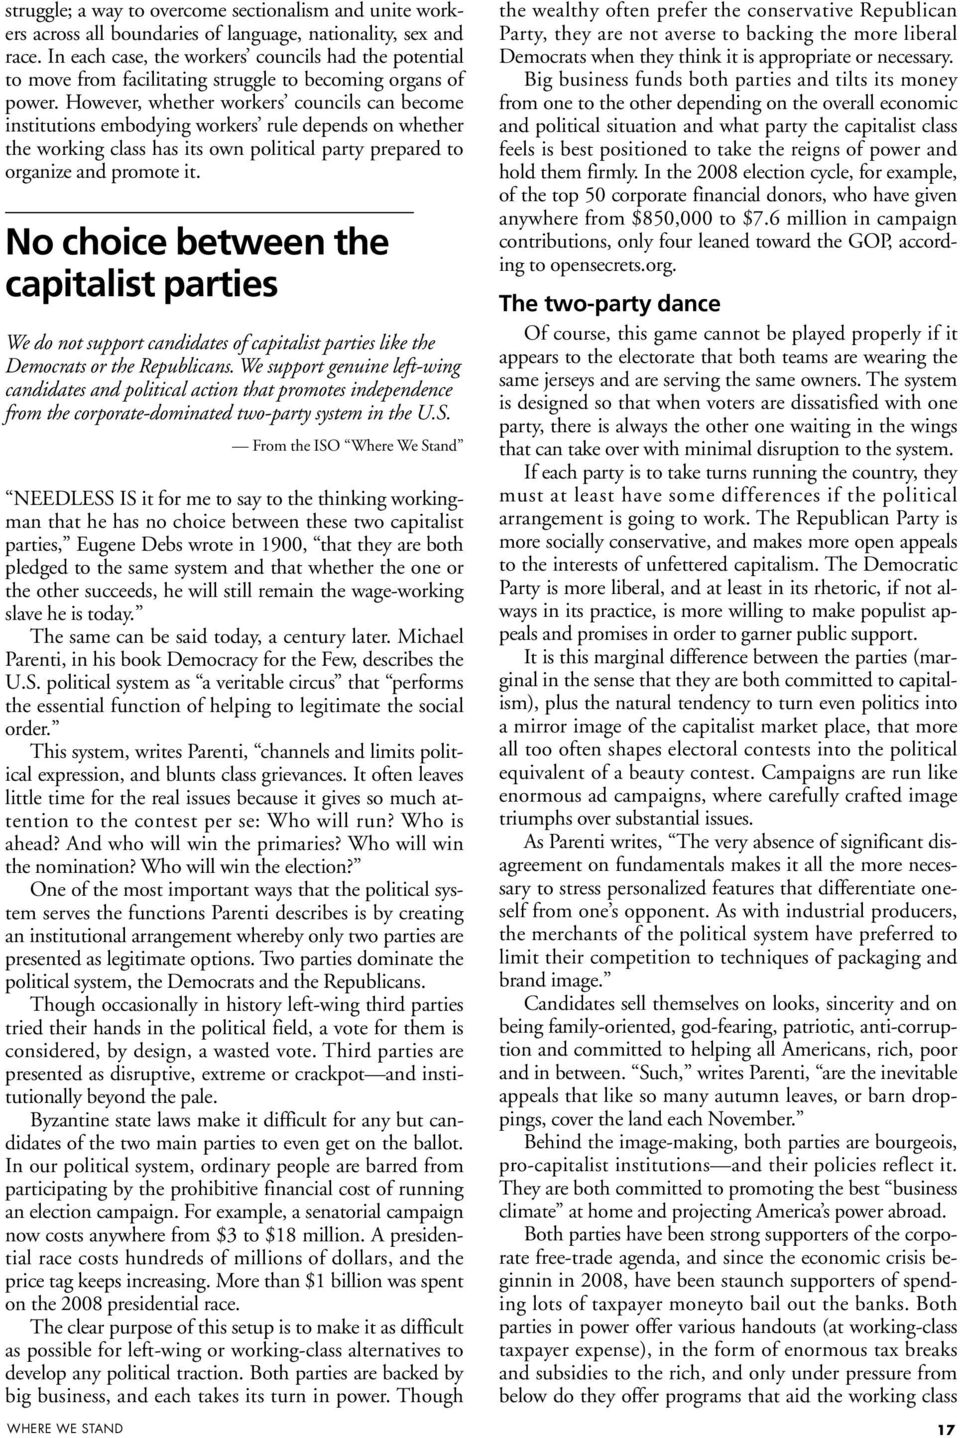 However, whether workers councils can become institutions embodying workers rule depends on whether the working class has its own political party prepared to organize and promote it.